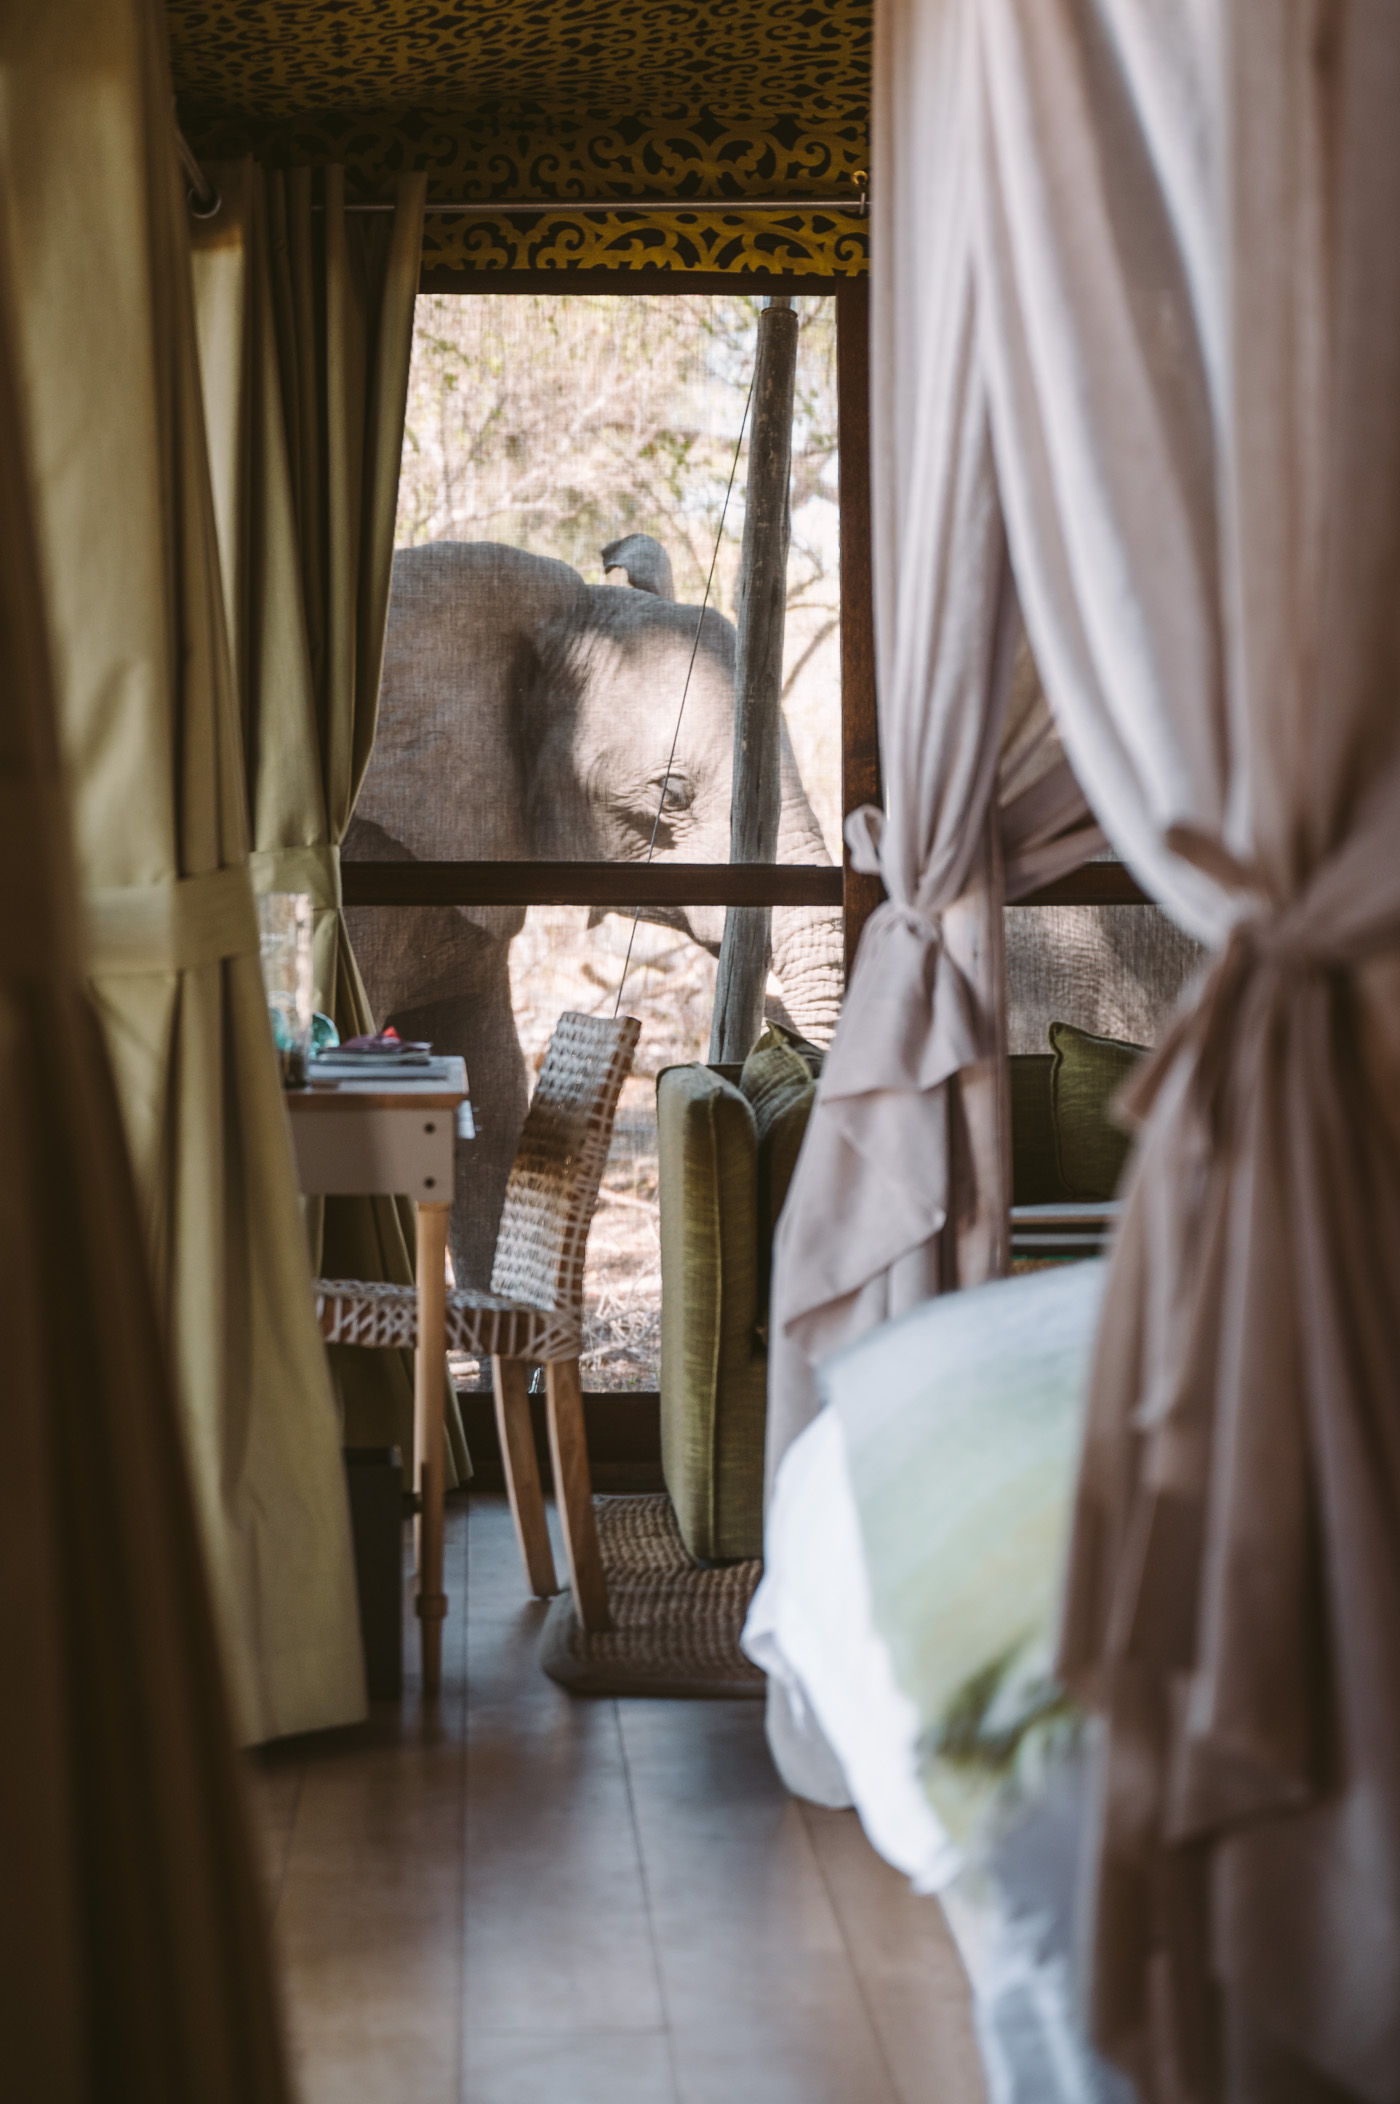 andBeyond Xaranna Okavango Delta Camp bedroom with elephant passing by